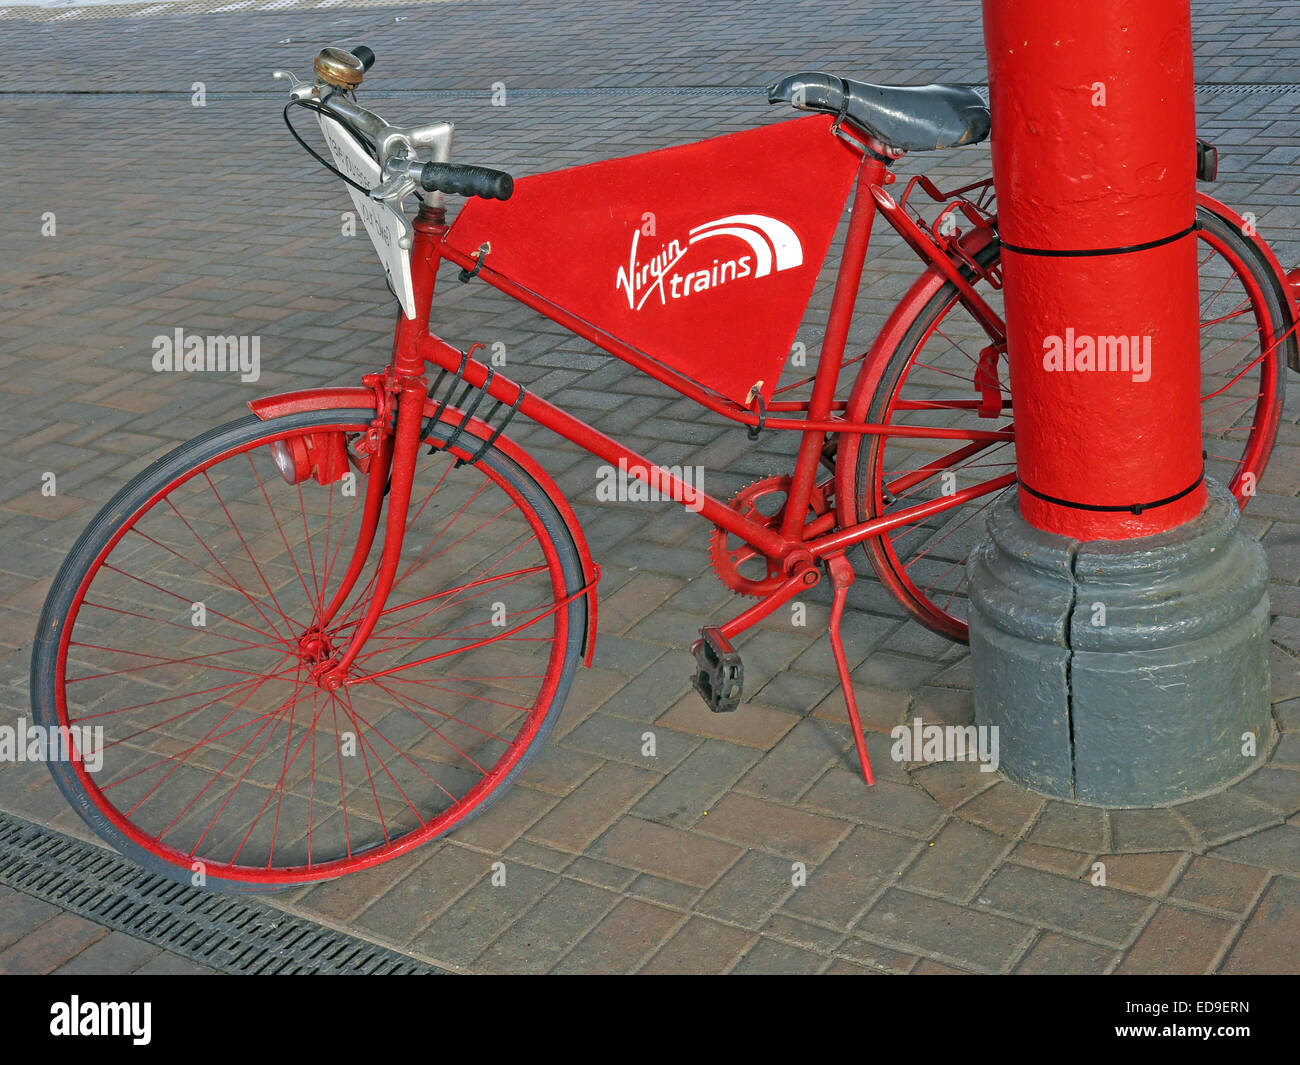 Welcome to Warrington Bank Quay Railway Station, Cheshire, England UK Red Bike - Stock Image